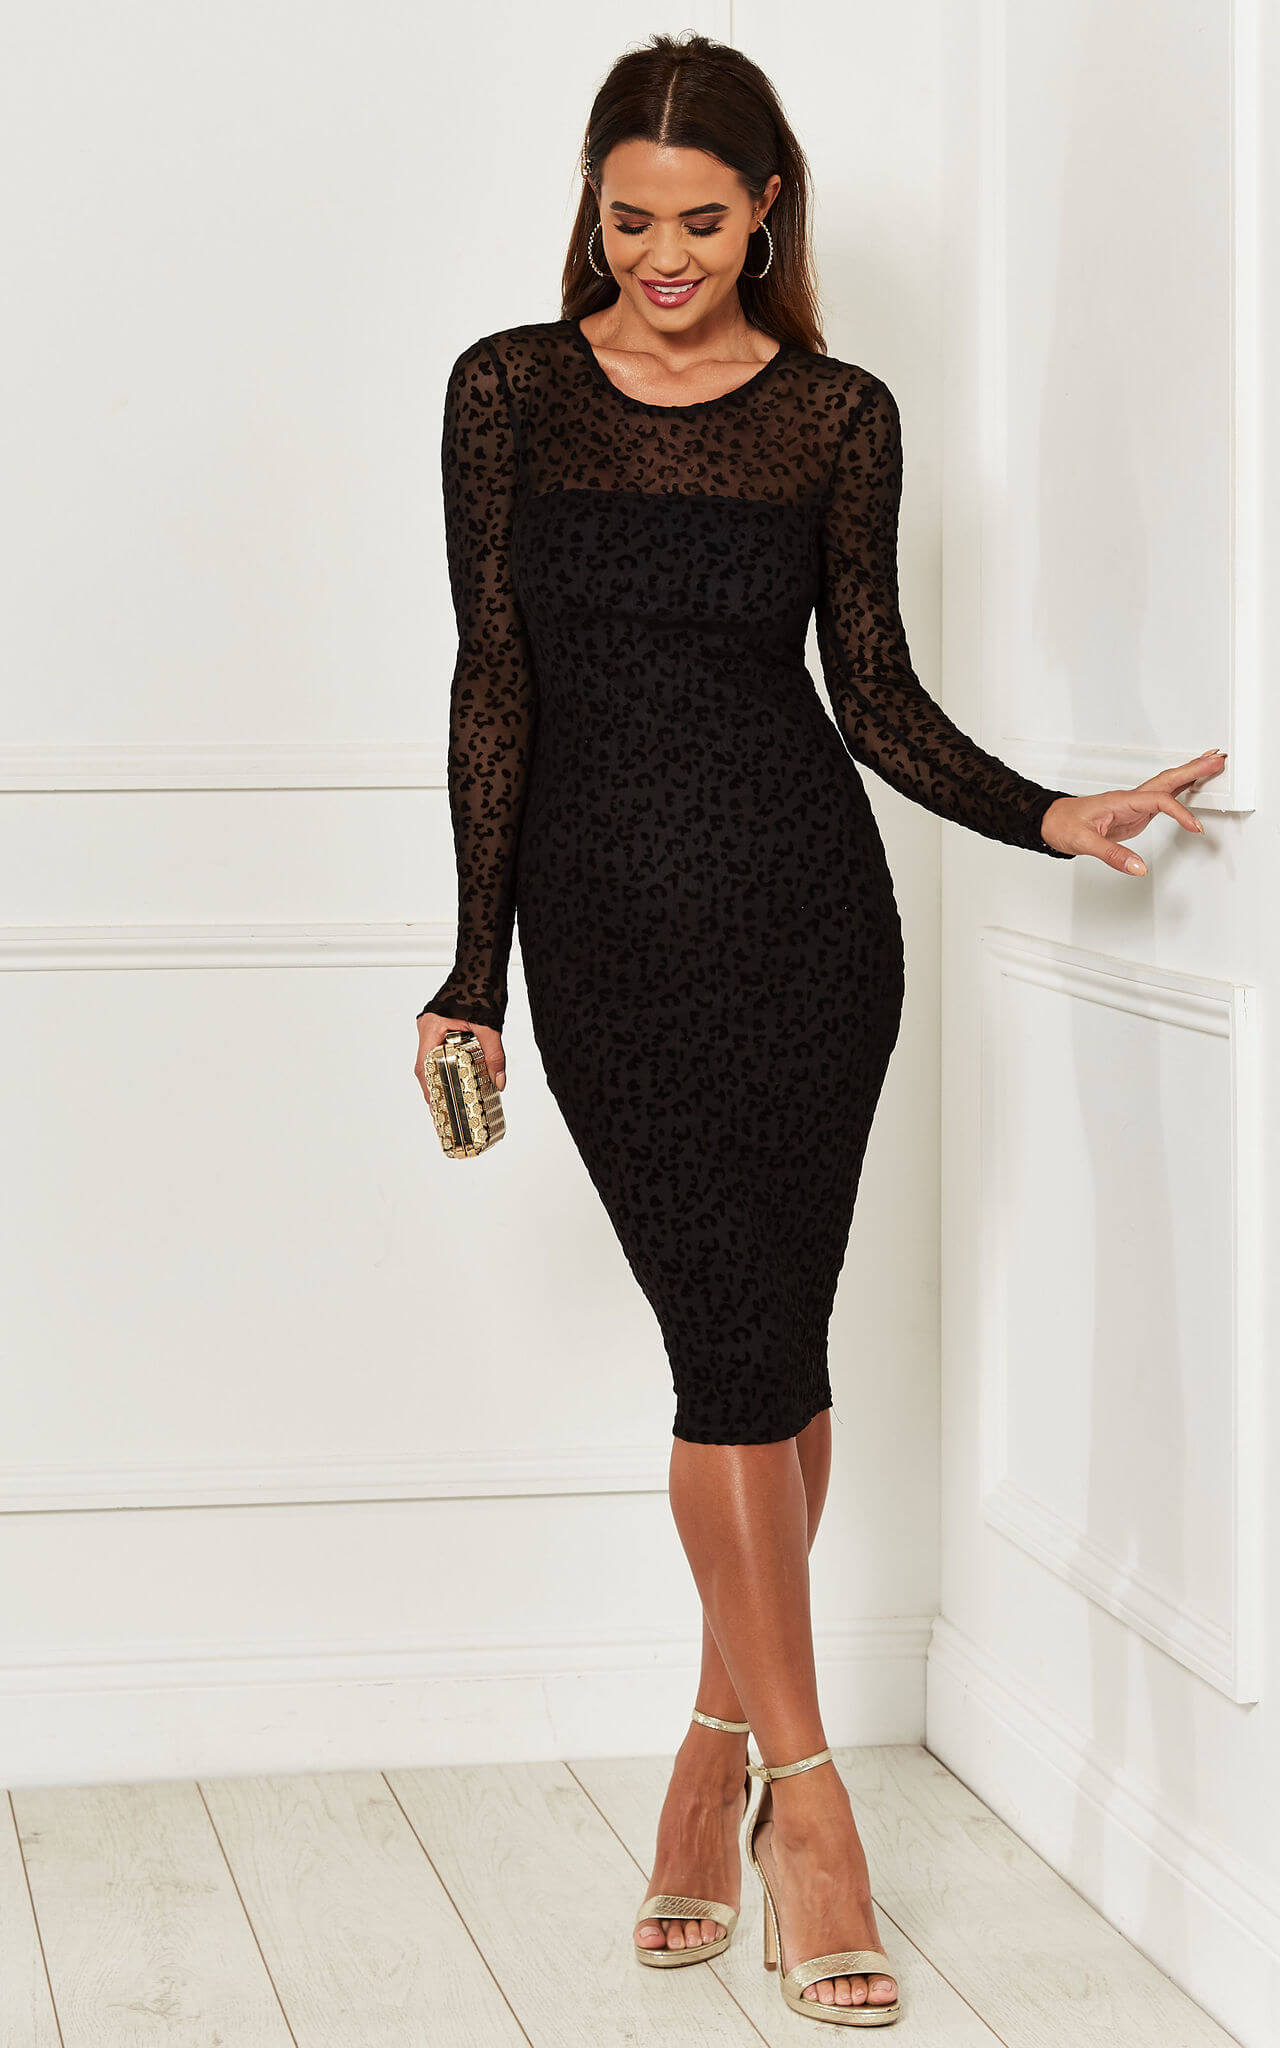 Model wears the black velvet bodycon burnout dress with nude heels and clutch bag